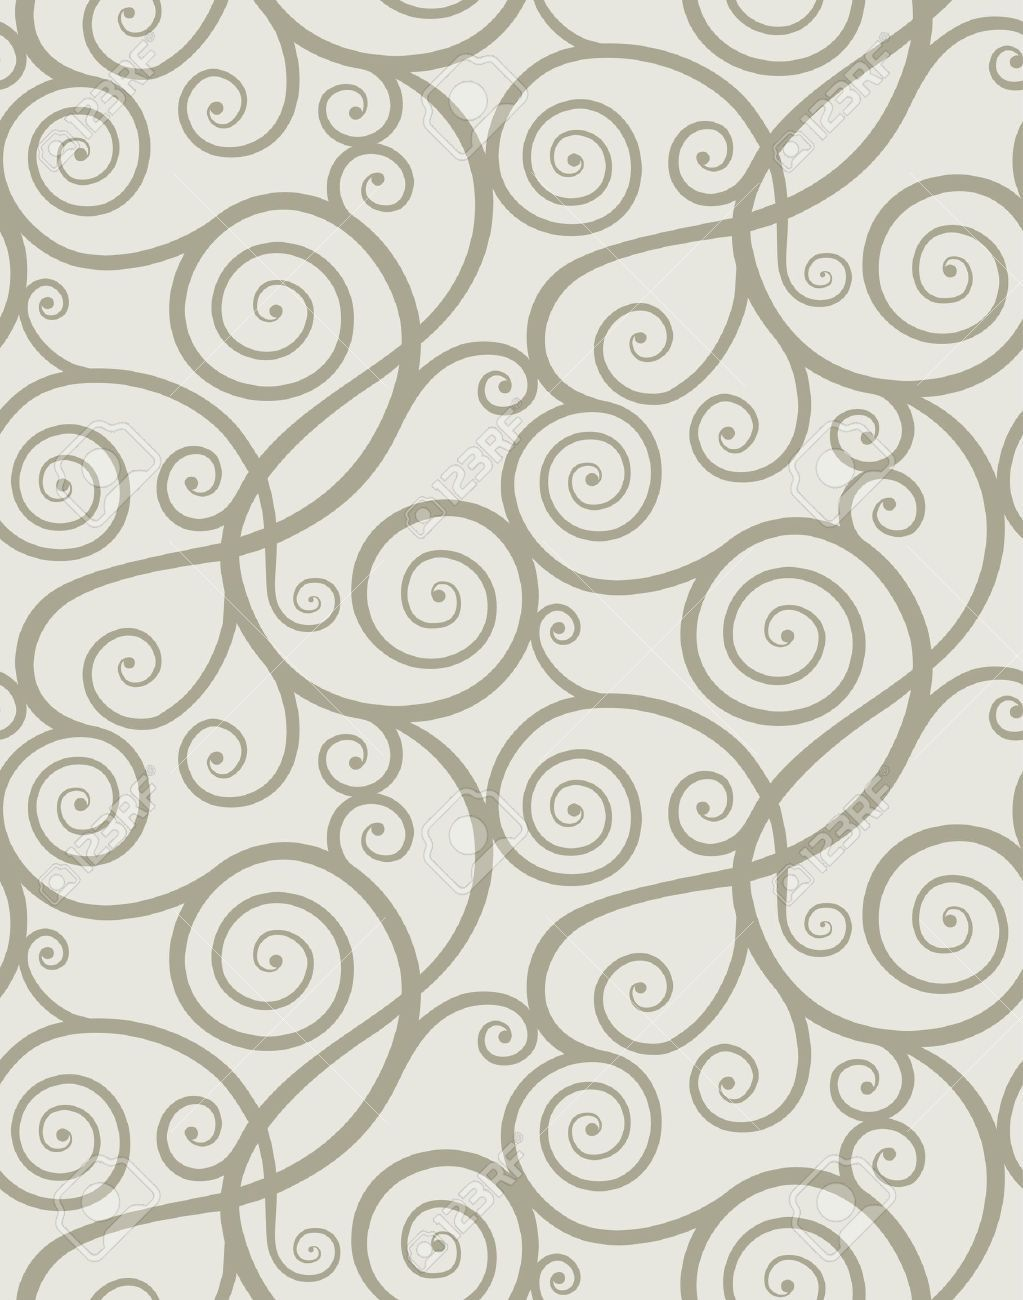 4637244 Seamless Background From A Floral Ornament Fashionable Modern Wallpaper Or Textile Stock Vector Jpg 1023 1300 Papeis De Parede Scrapbook Parede